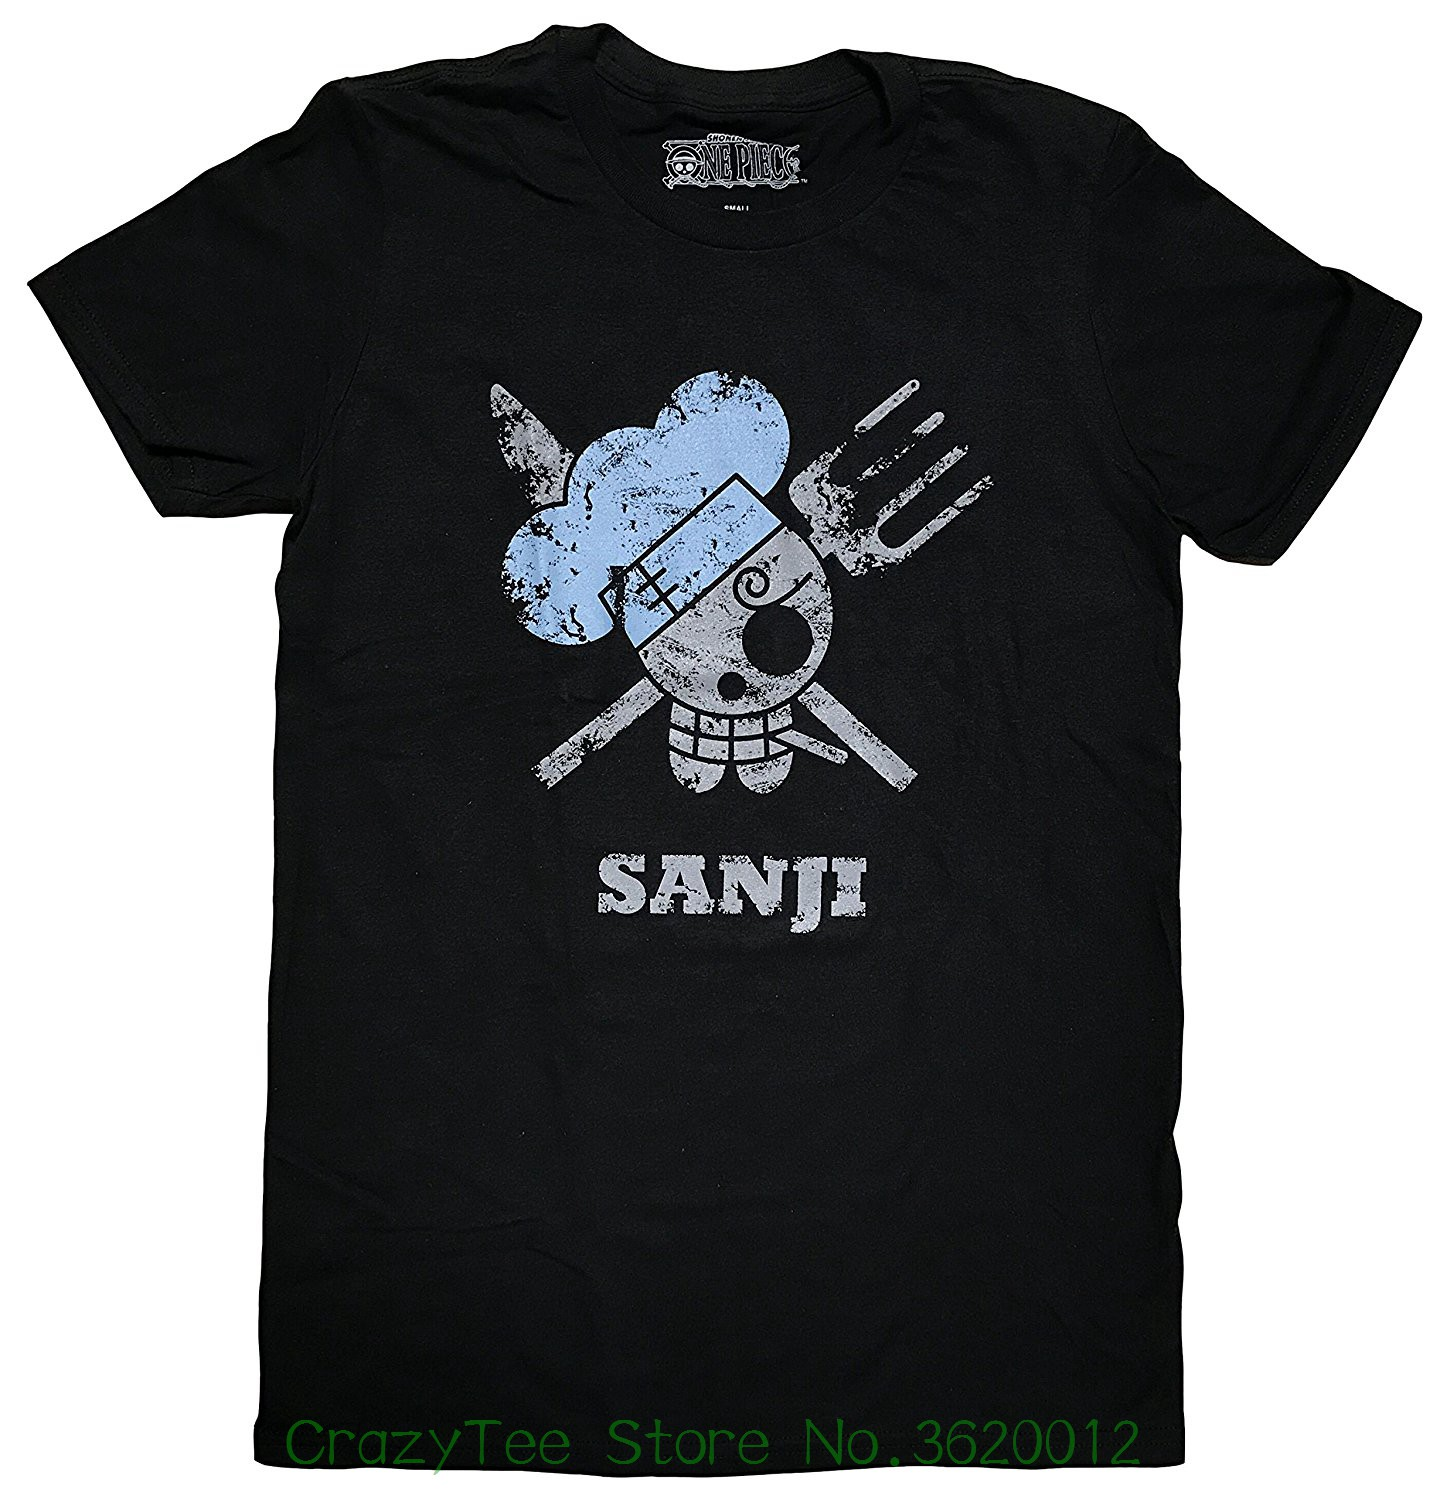 2018 Summer T Shirt One Piece : Vinsmoke Sanji Pirates Flag Distressed Men's Screen Print T-shirt